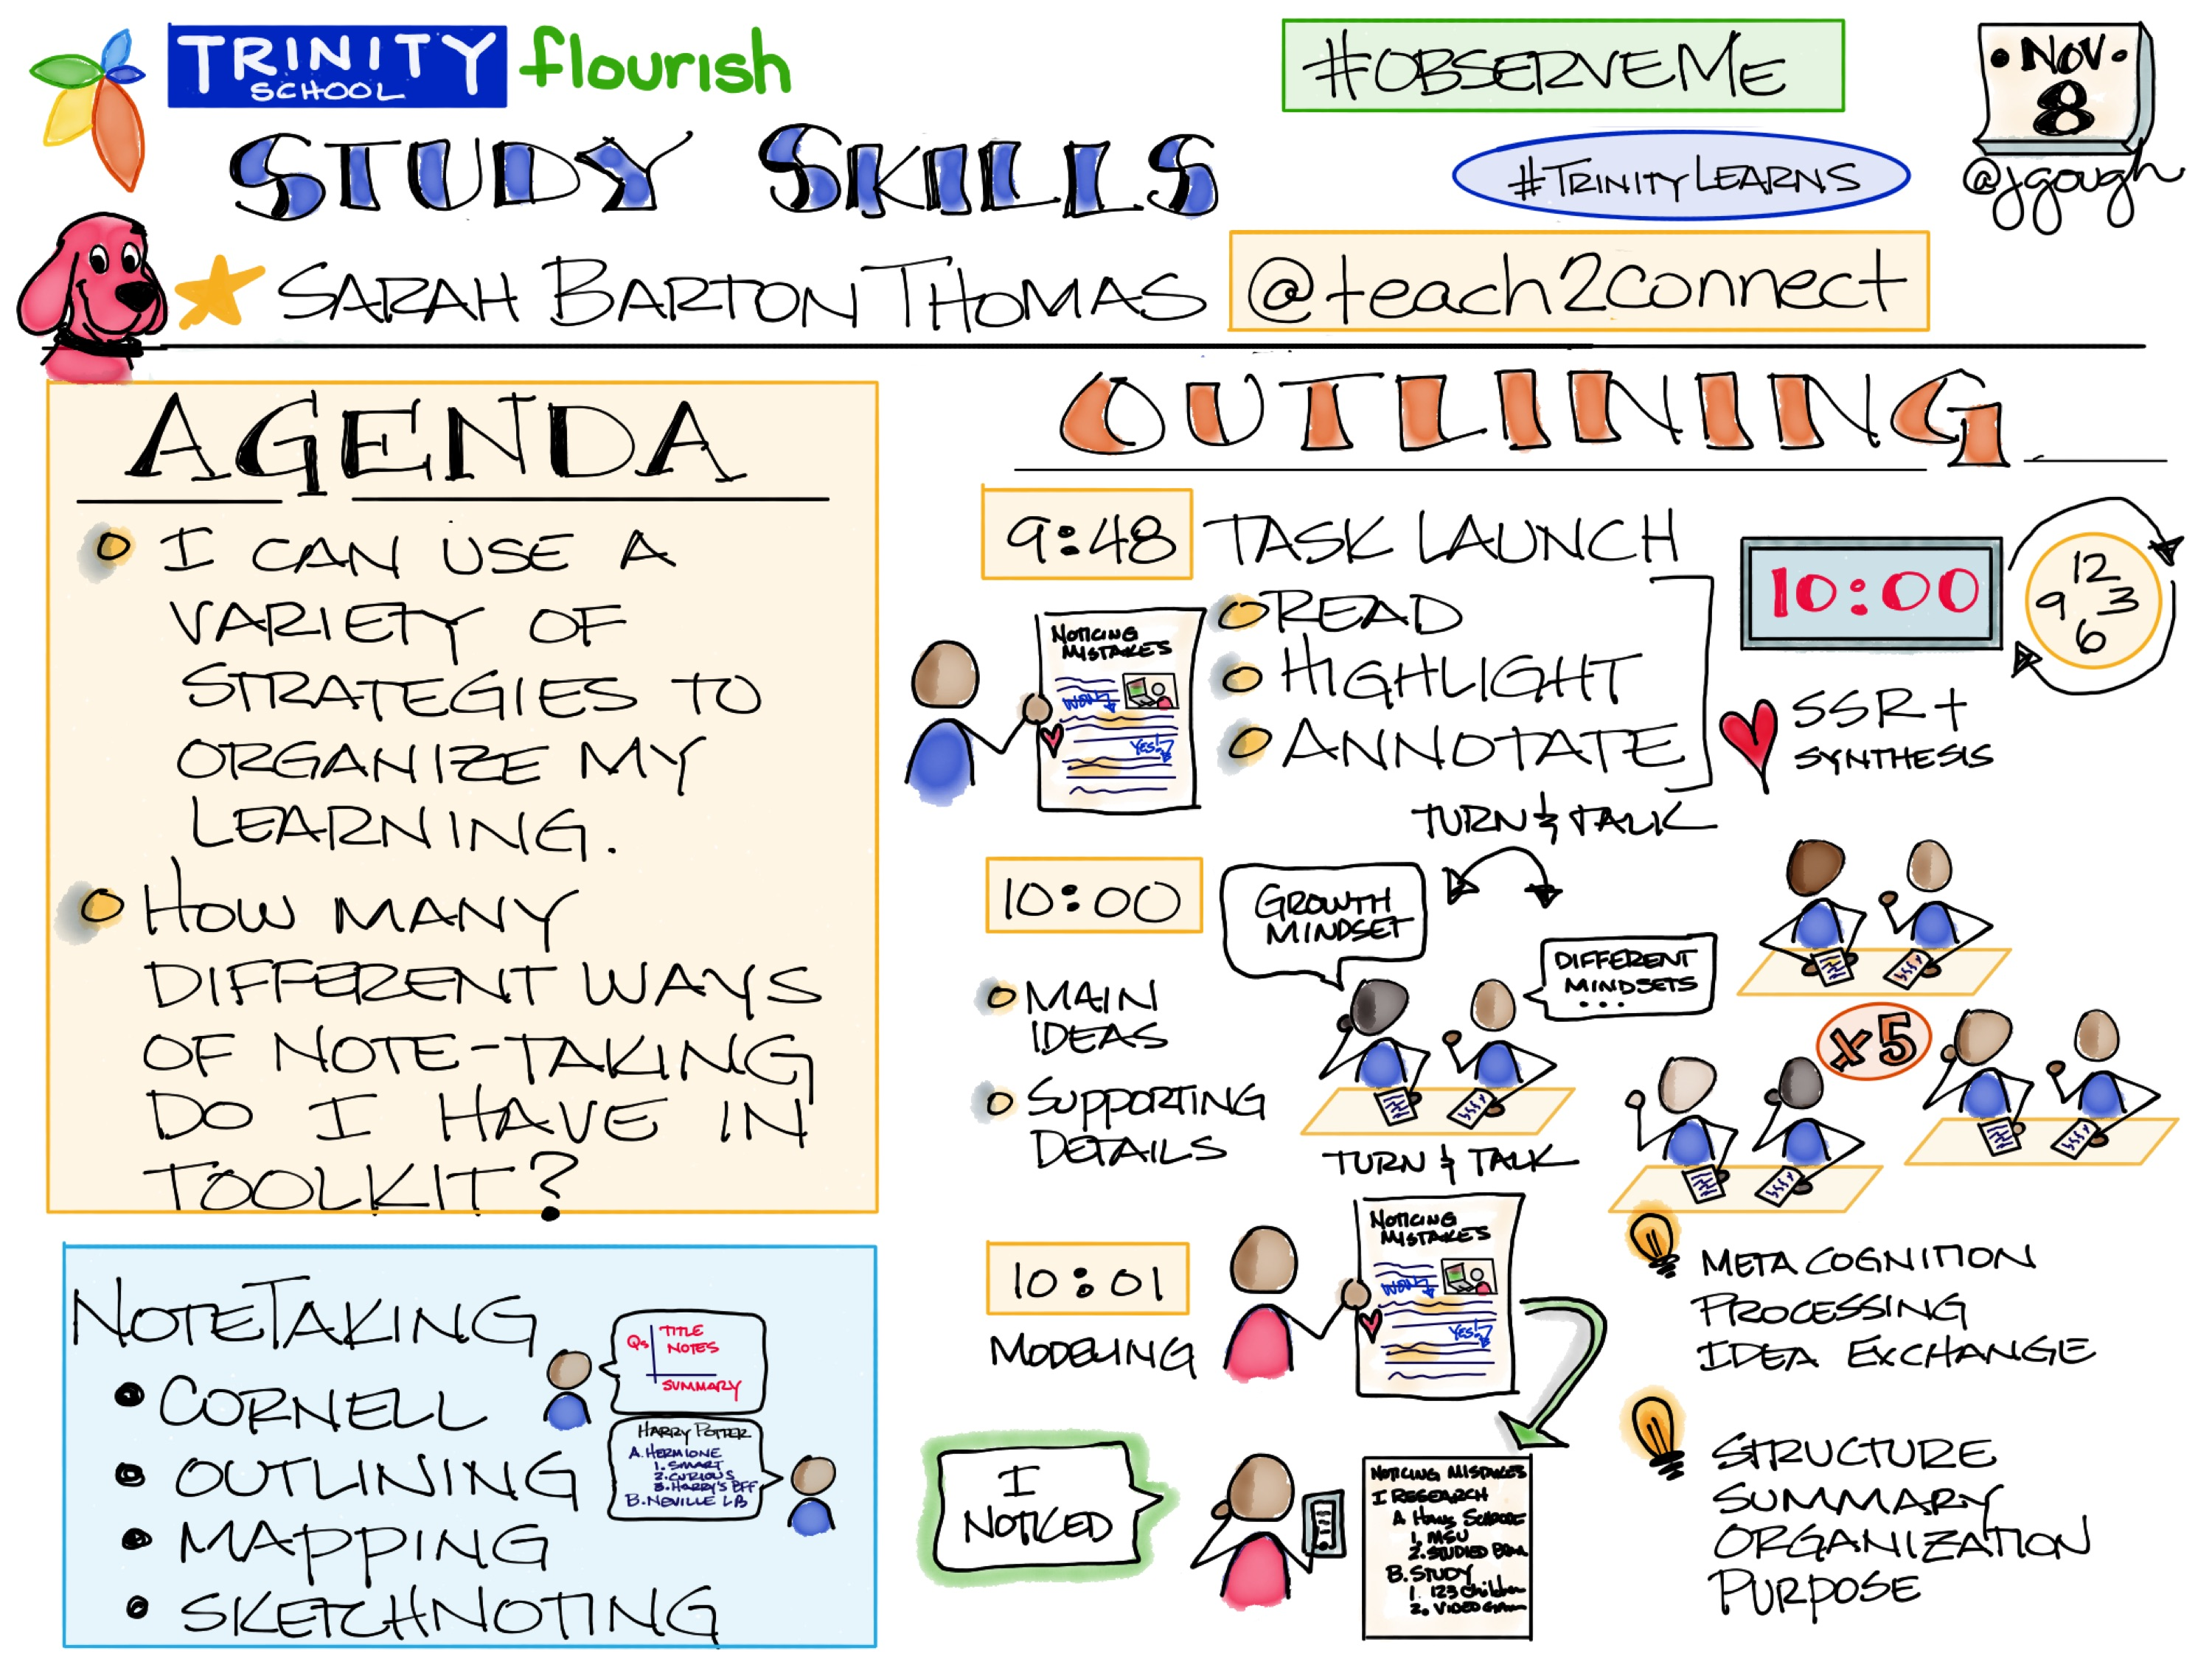 Sharing my #ObserveMe #Sketchnote from #TrinityLearns #6thGrade #StudySkills session with @teach2connect: How many tools are in your note-taking toolkit?